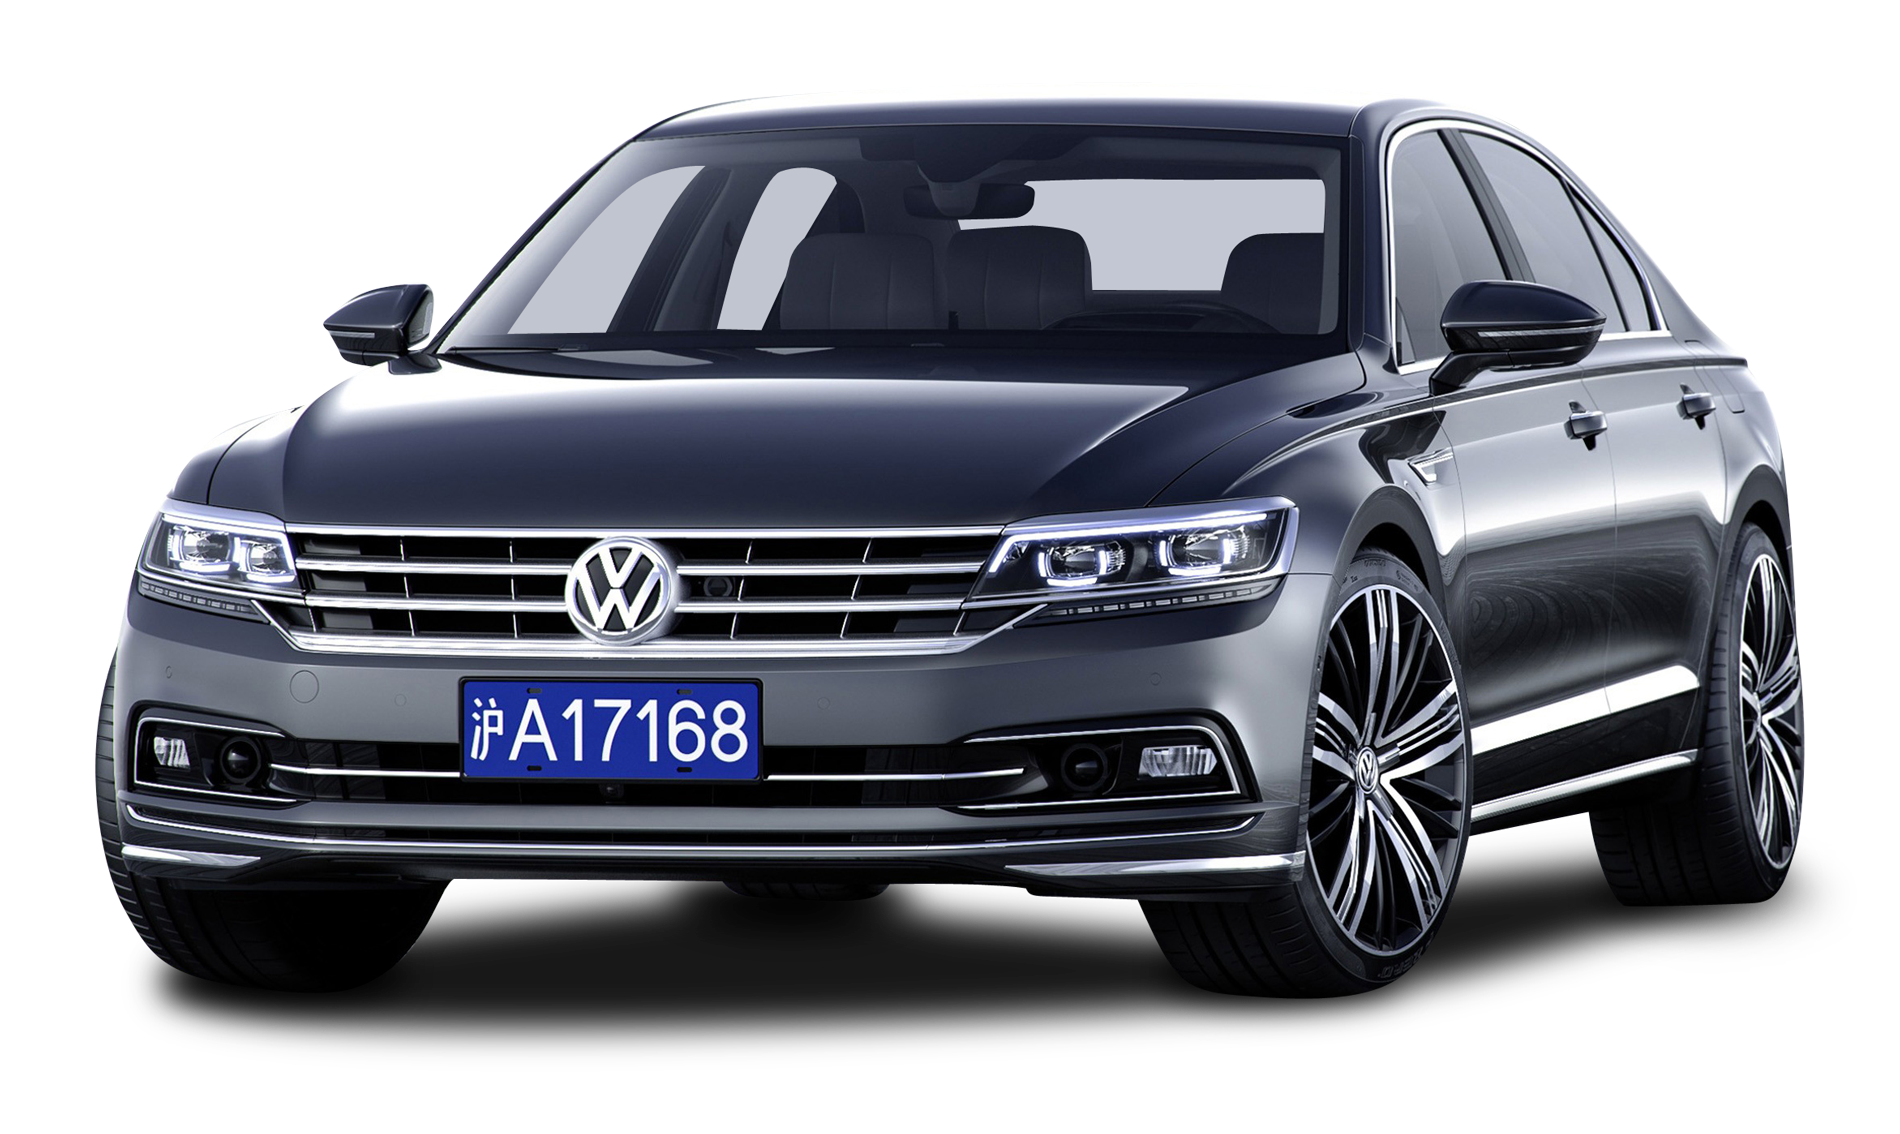 Expensive car clipart picture freeuse stock Grey Volkswagen Phideon luxury Car PNG Image - PurePNG | Free ... picture freeuse stock